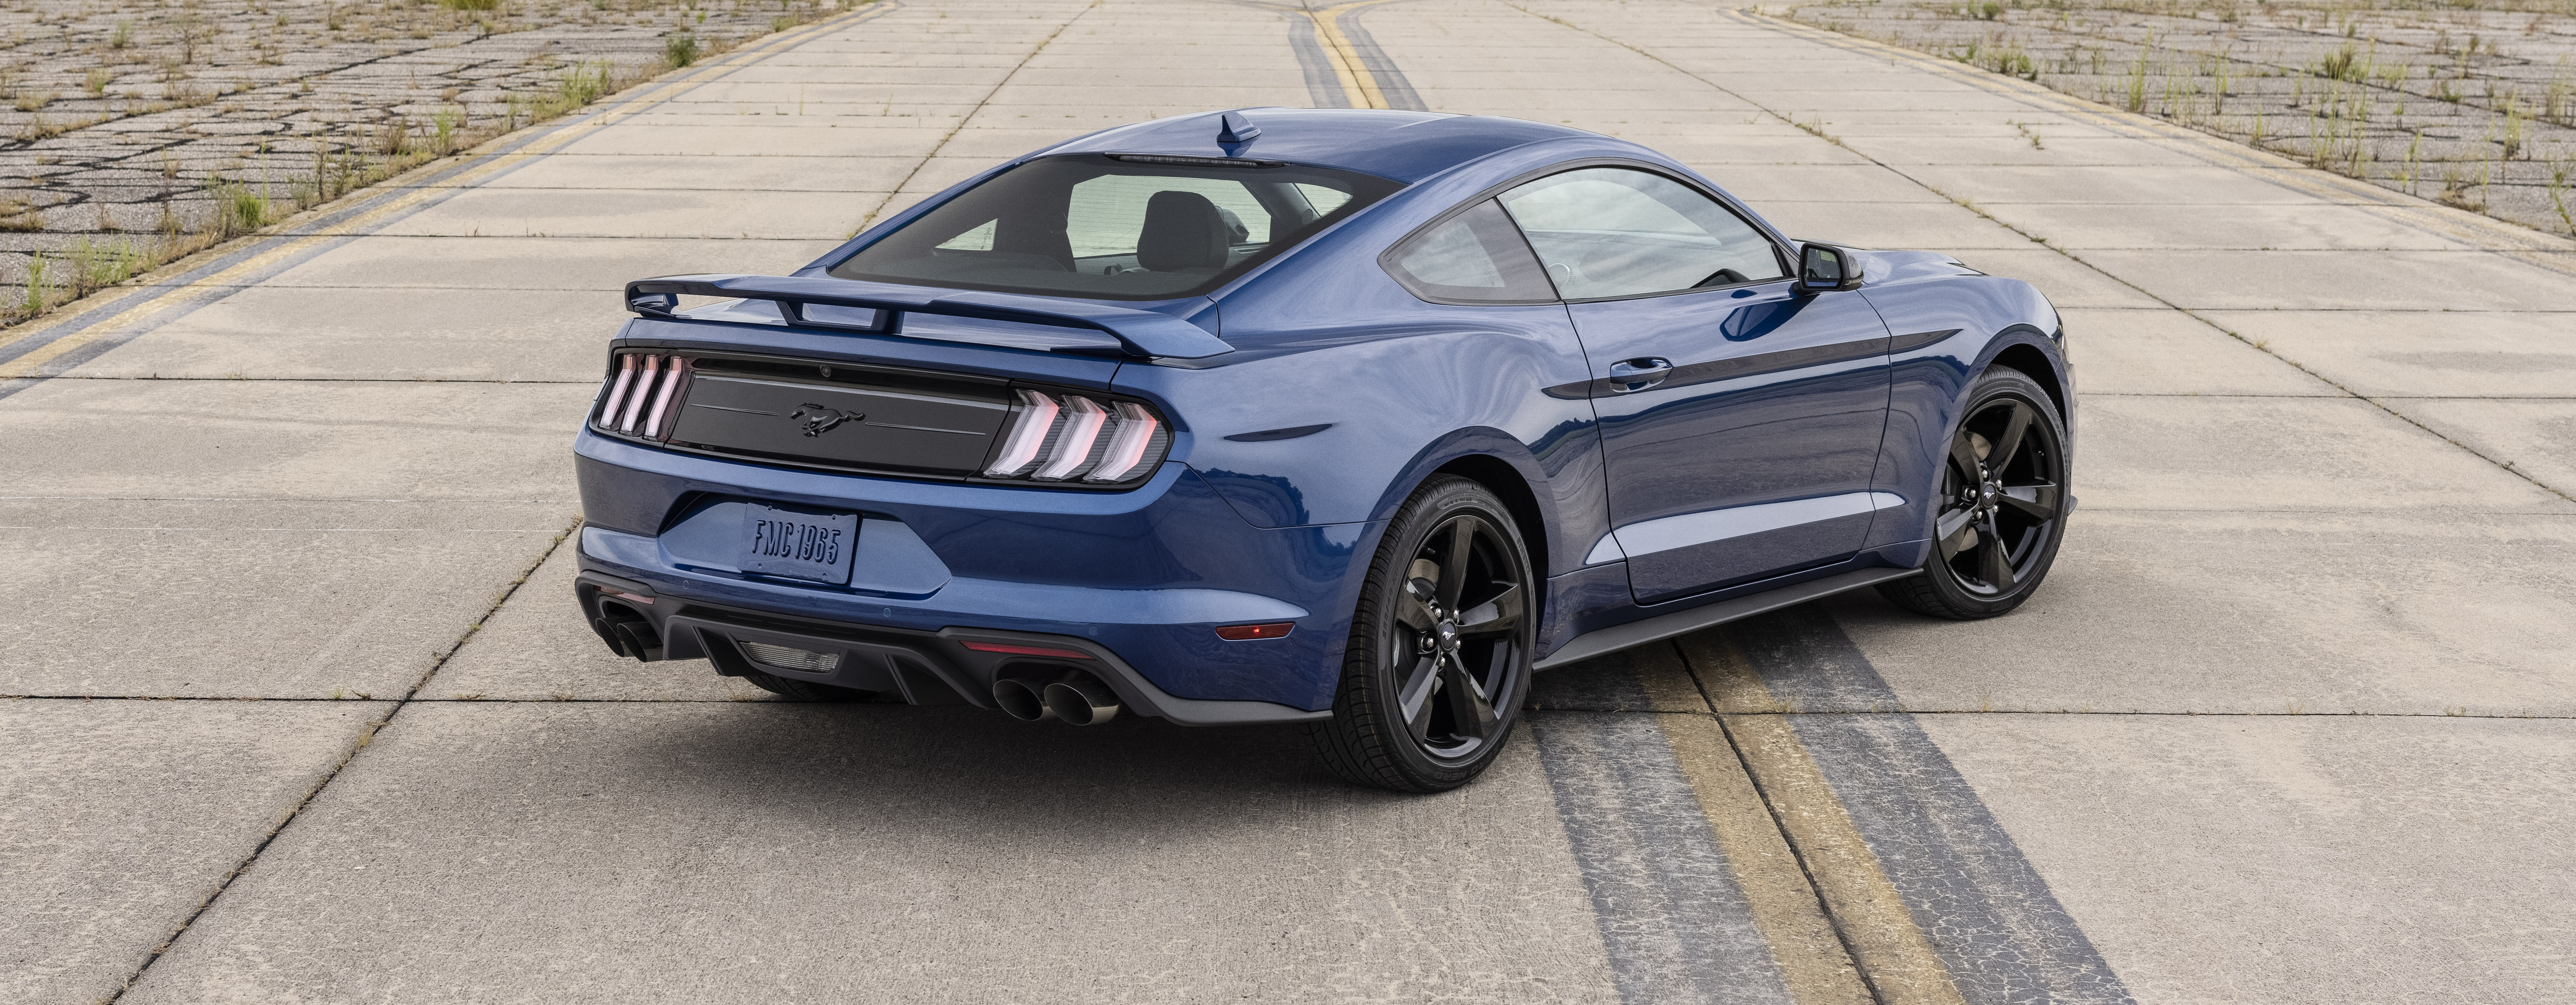 2022 Ford Mustang Stealth Edition AppearancePackage